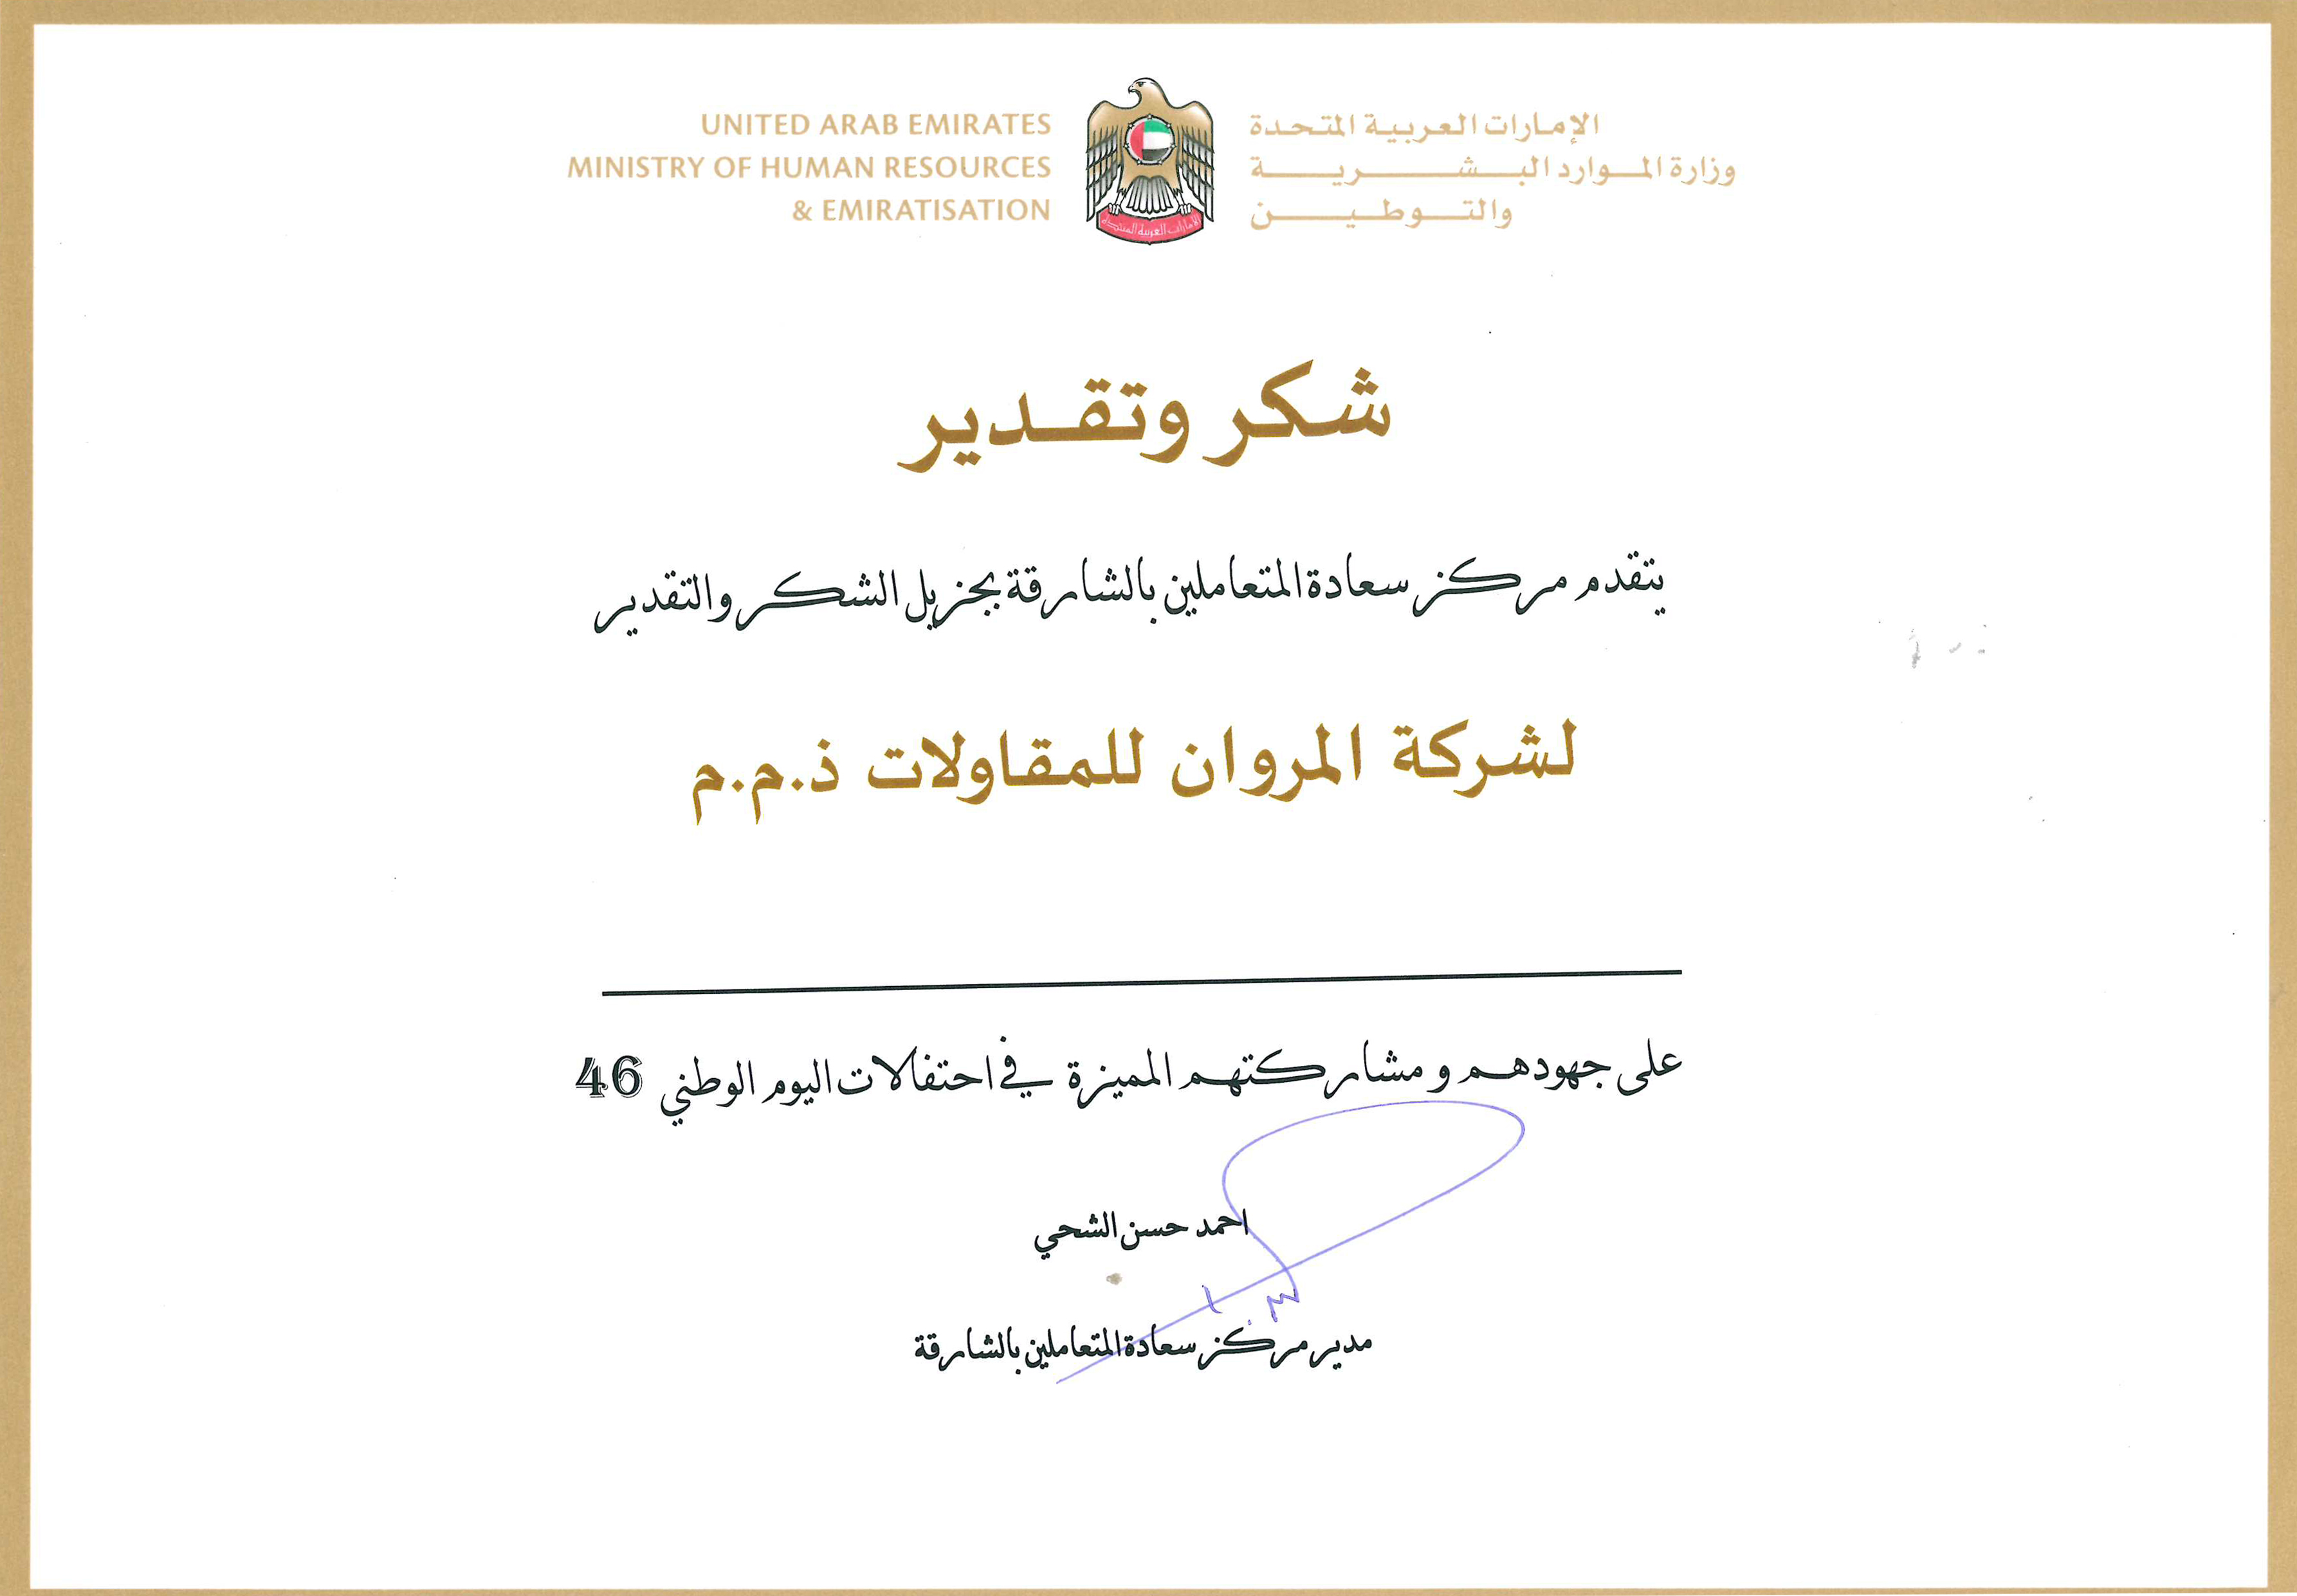 Mgcc Certificate Of Appreciation From The Ministry Of Human